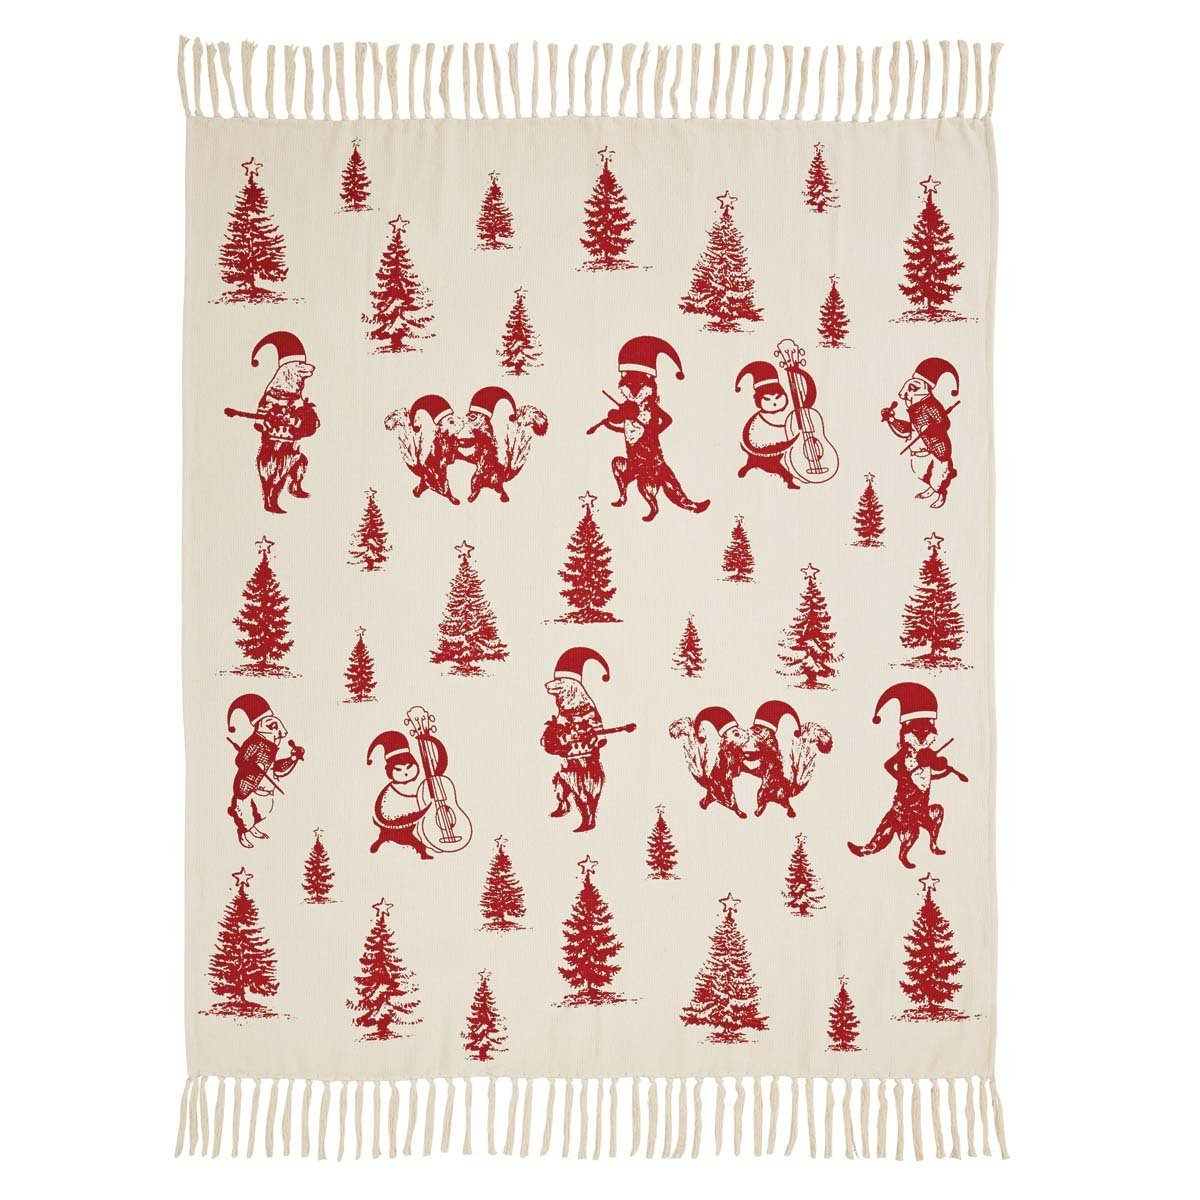 Creature Carol Woven Throw.